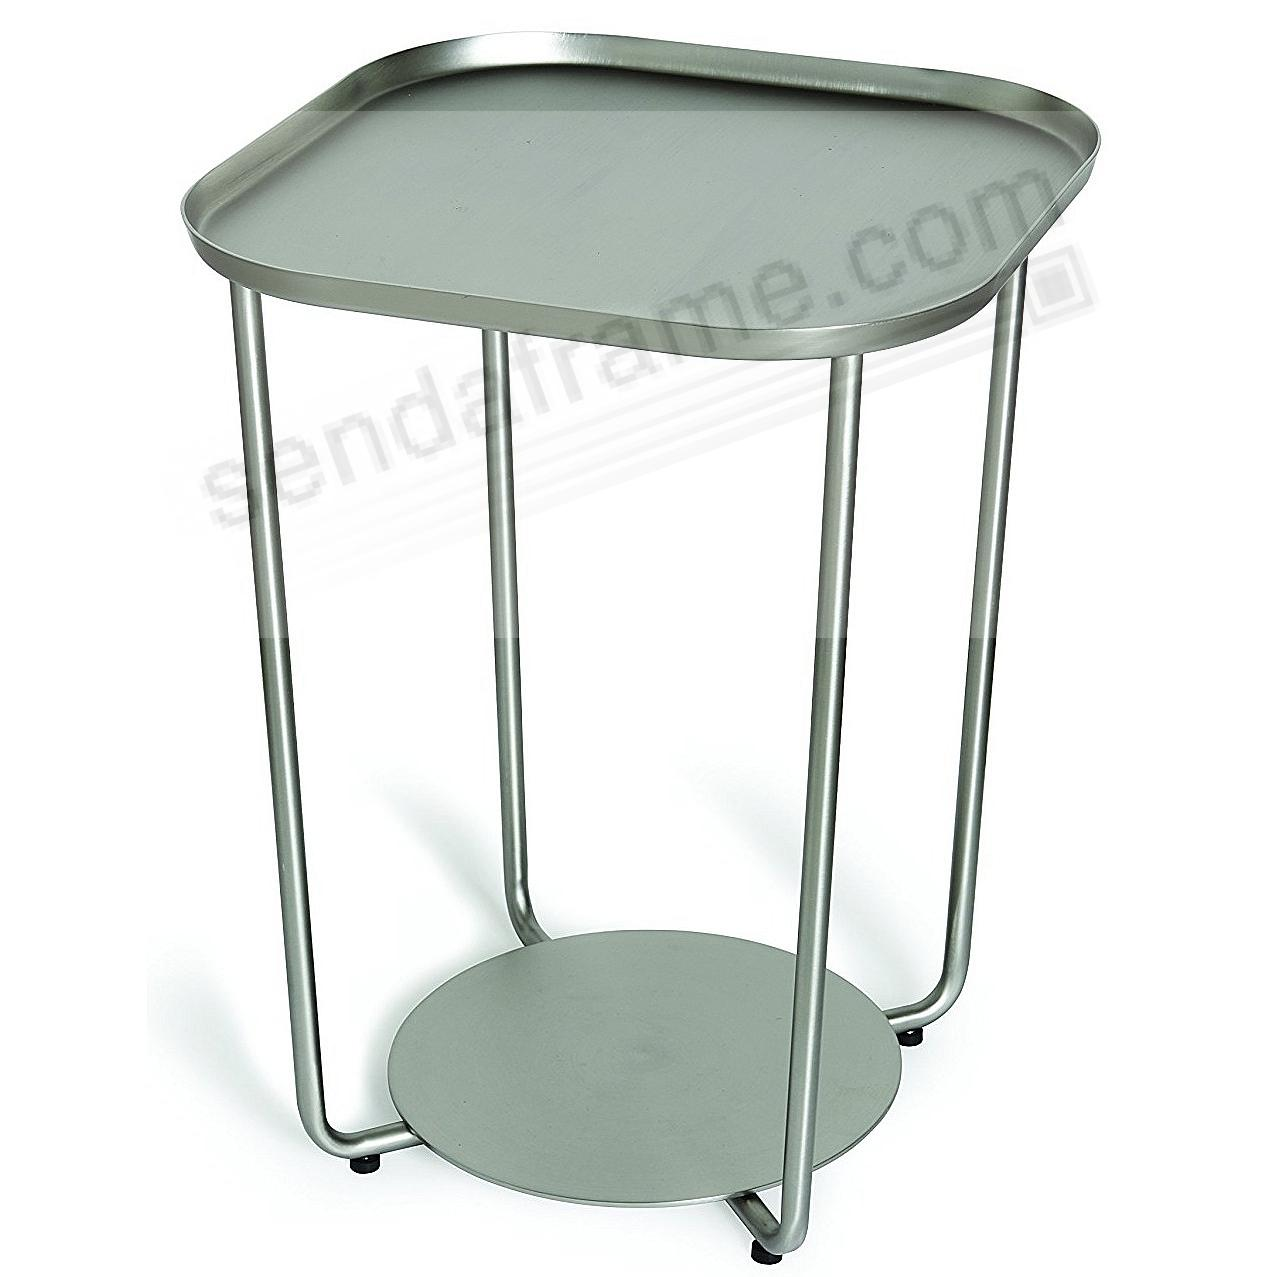 The Original ANNEX NICKEL SIDE TABLE by Umbra+®